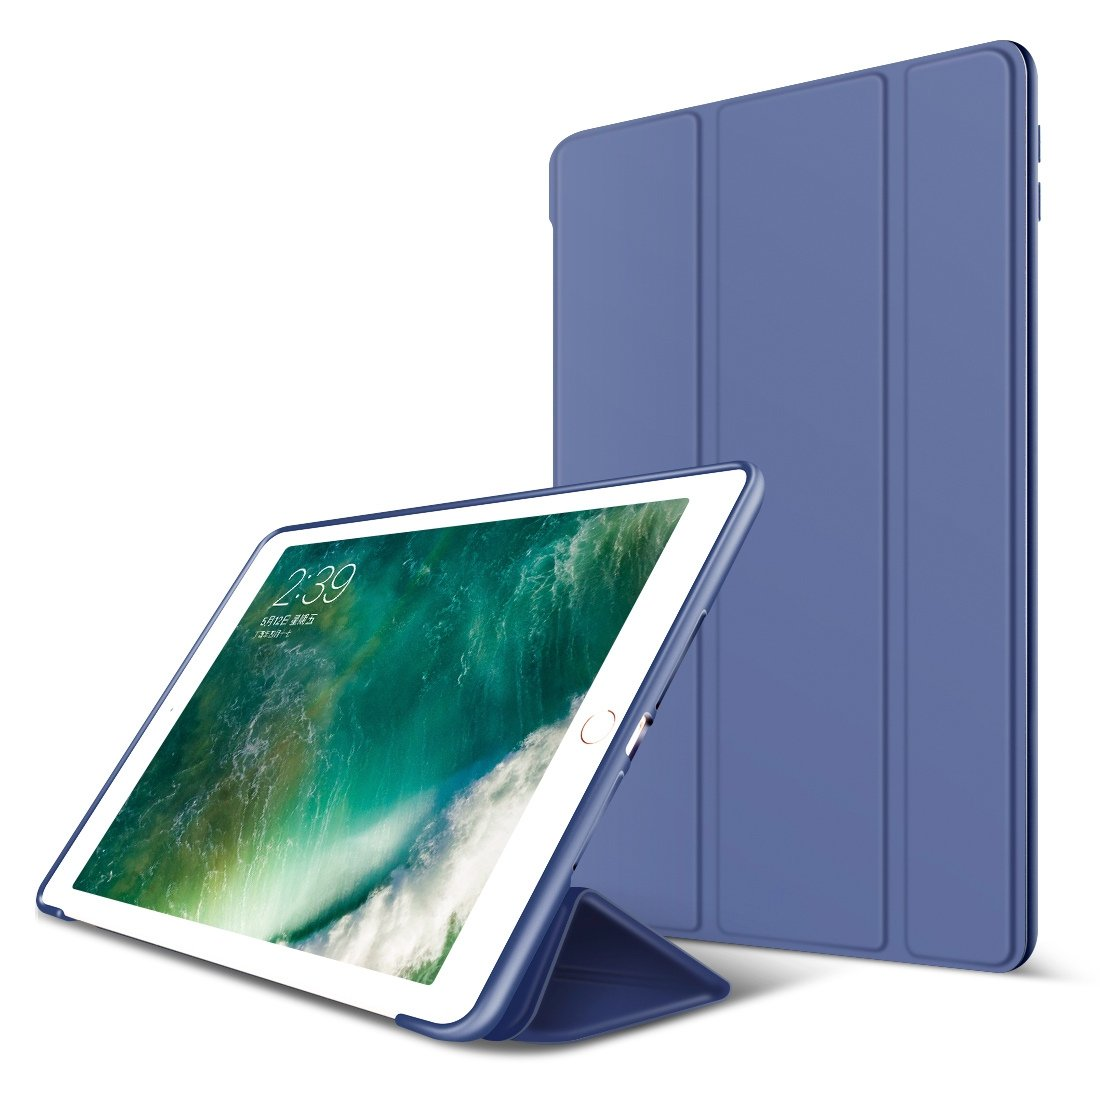 iPad Air 2 Case, GOOJODOQ Smart Cover with Magnetic Auto Sleep/Wake Function PU Leather Shockproof Silicon Soft TPU Folio Case for Apple iPad Air 2 in Rose Gold GOOJODOQA101case-6